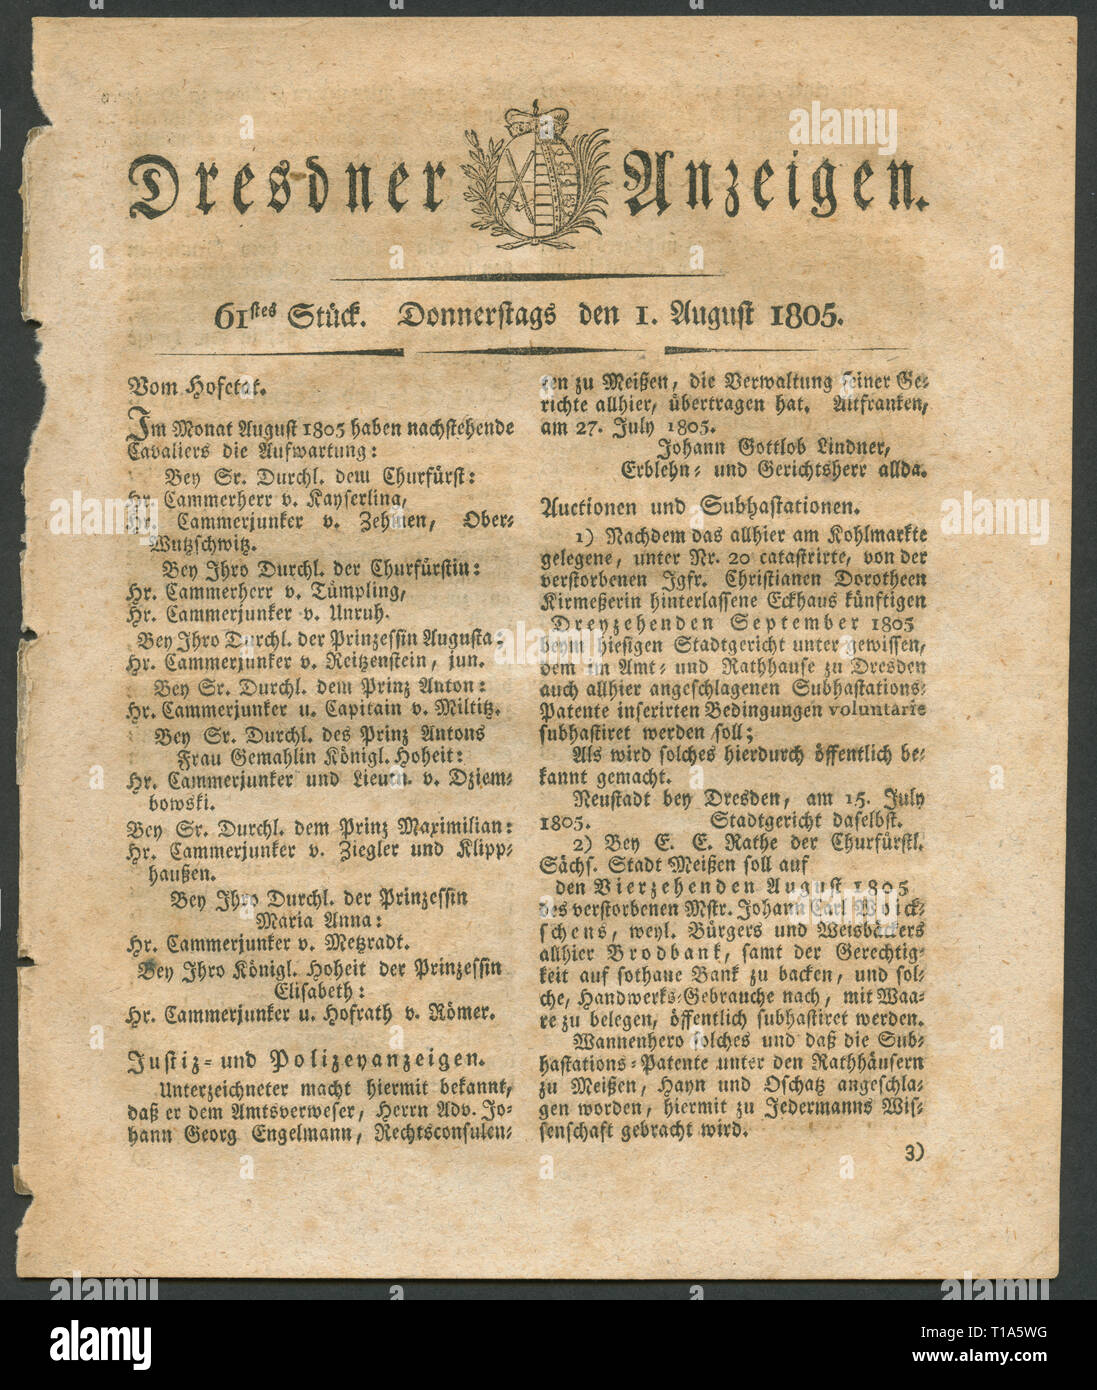 Germany, Saxony, Dresden, historical newspaper ' Dresdner Anzeigen', published 1.8.1805., Additional-Rights-Clearance-Info-Not-Available - Stock Image